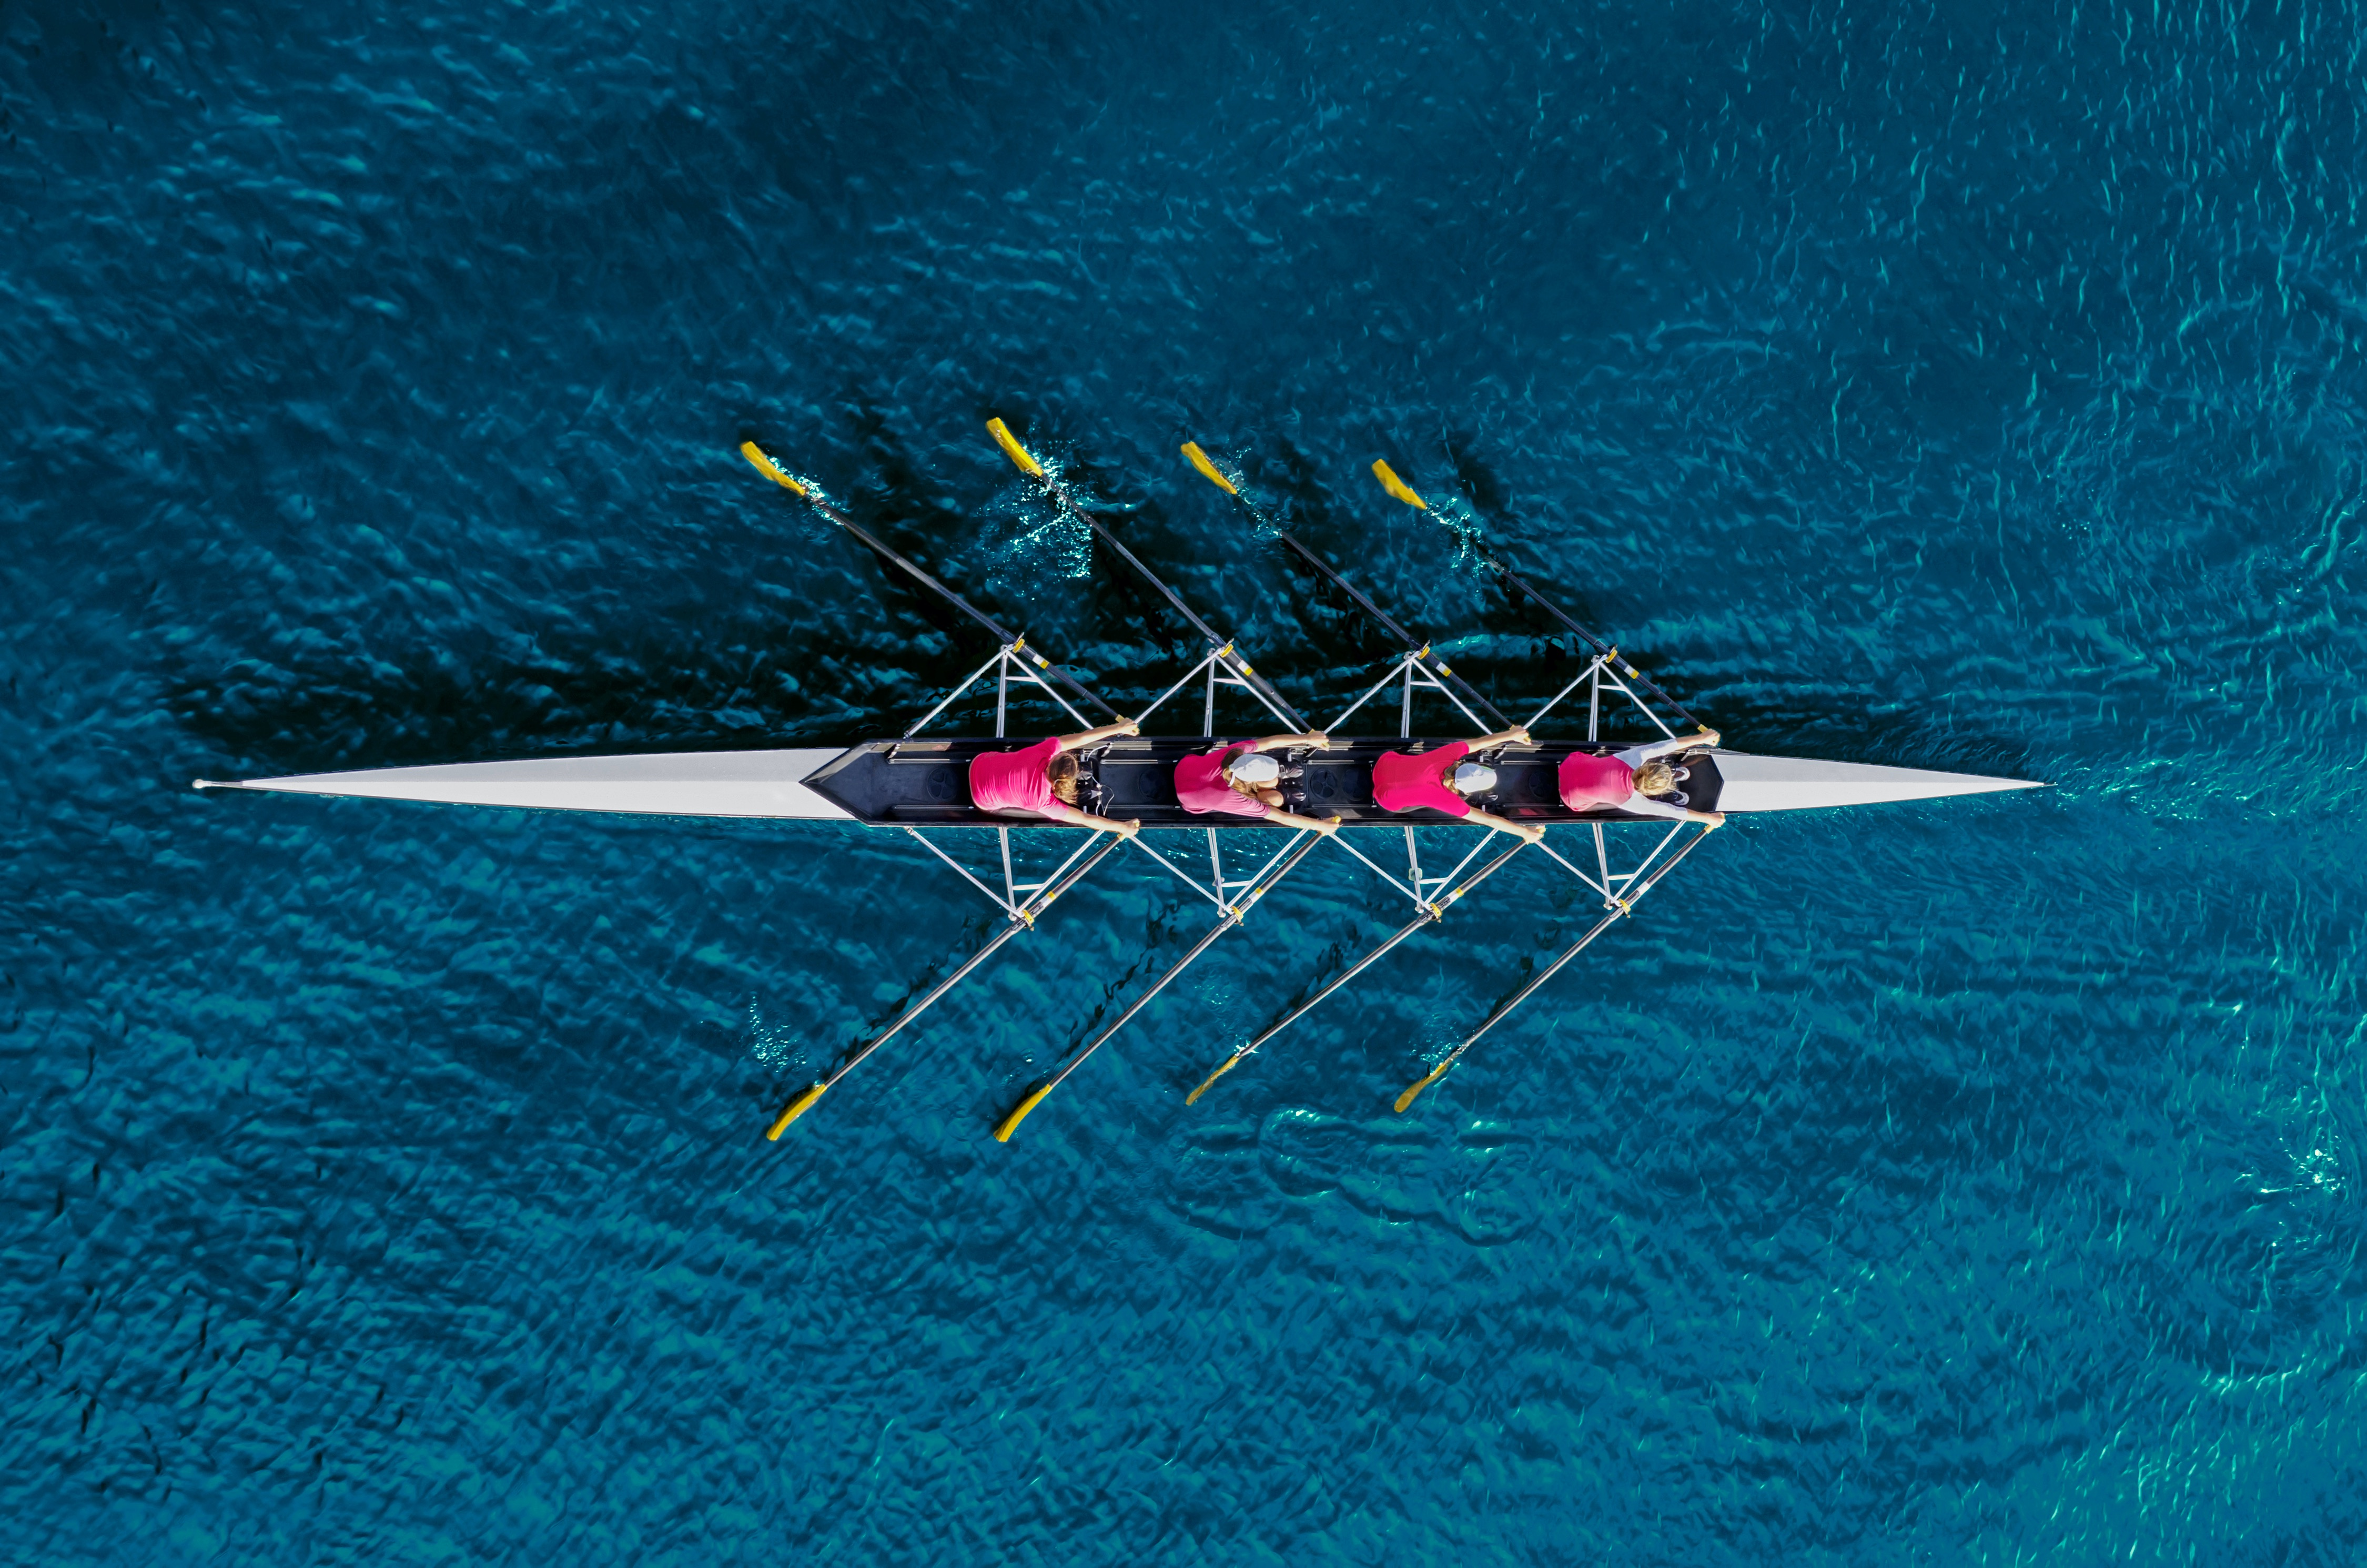 A team of four rowers, rowing together in blue water.